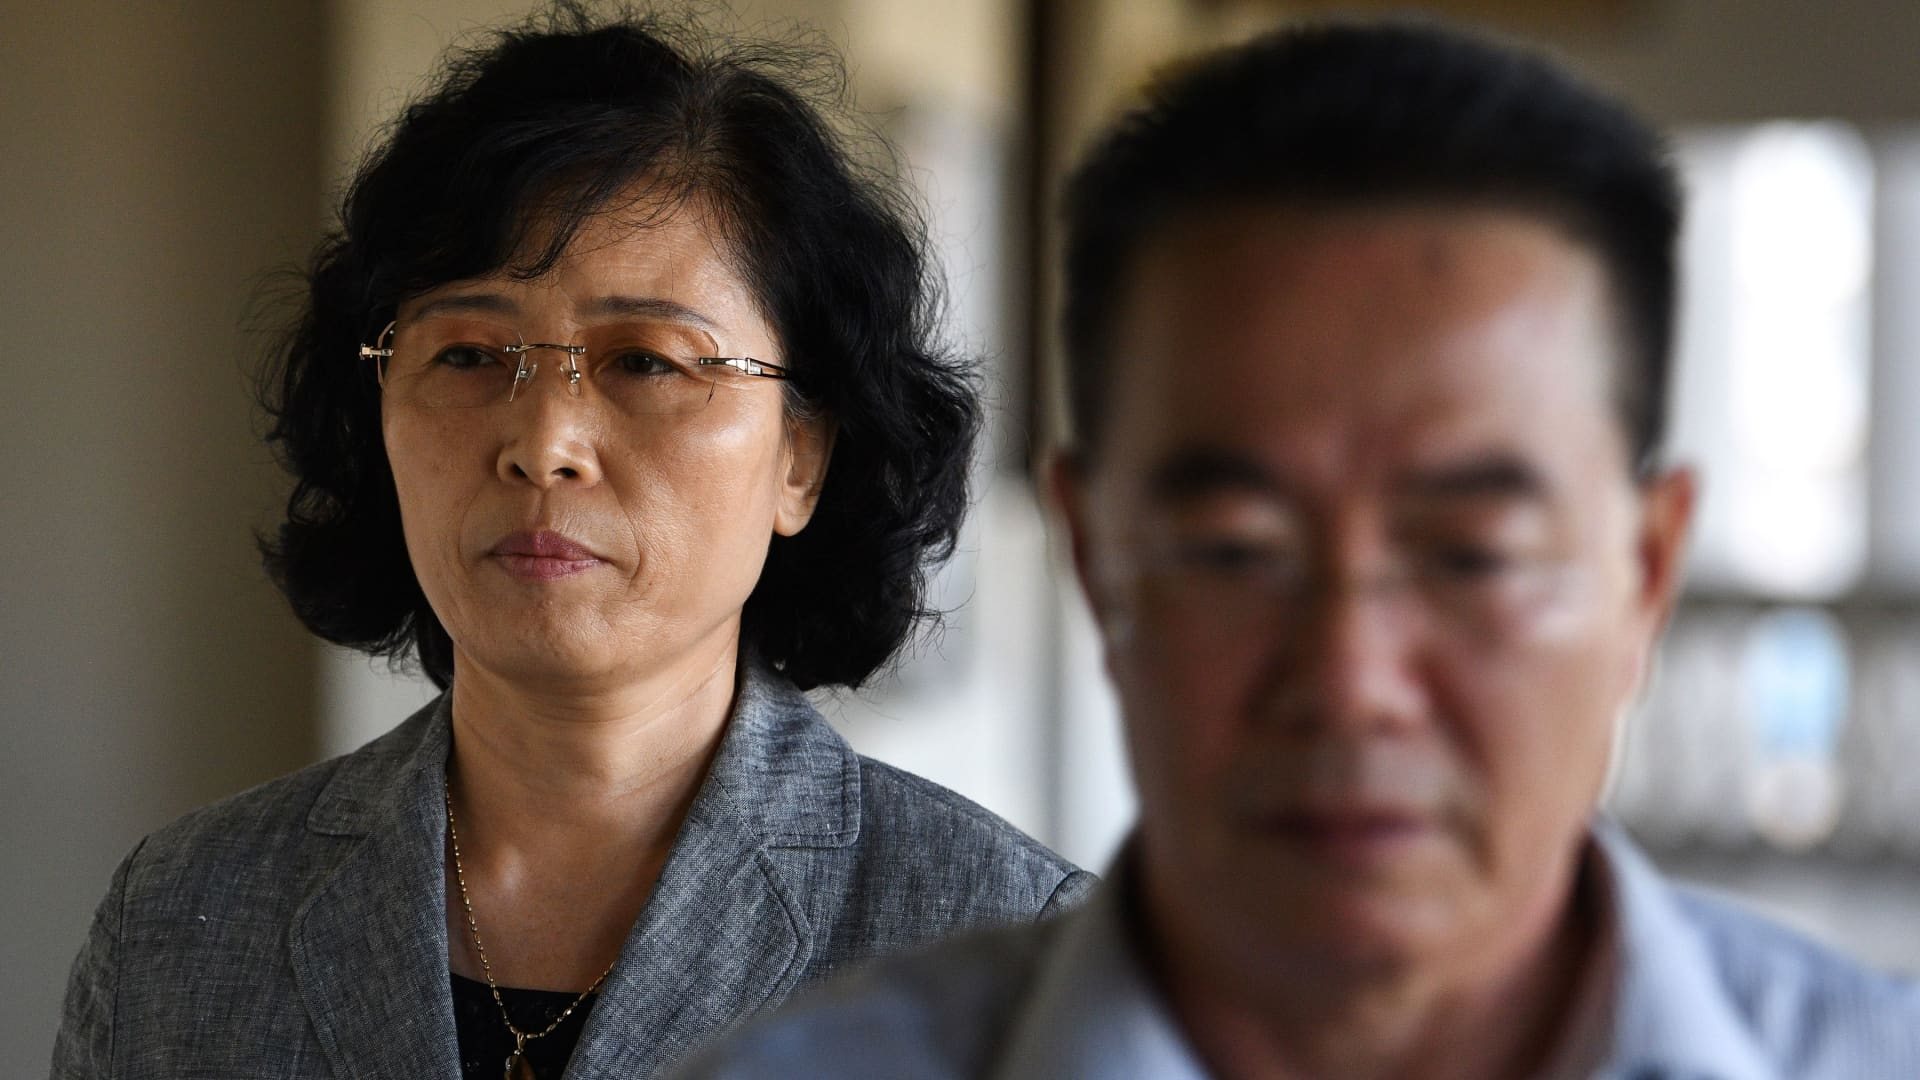 Kang Son Bi (L) wife of Mun Chol Myong, the North Korean man who faces possible extradition from Malaysia to the US on money-laundering charges arrives at the High Court in Kuala Lumpur on December 6, 2019.